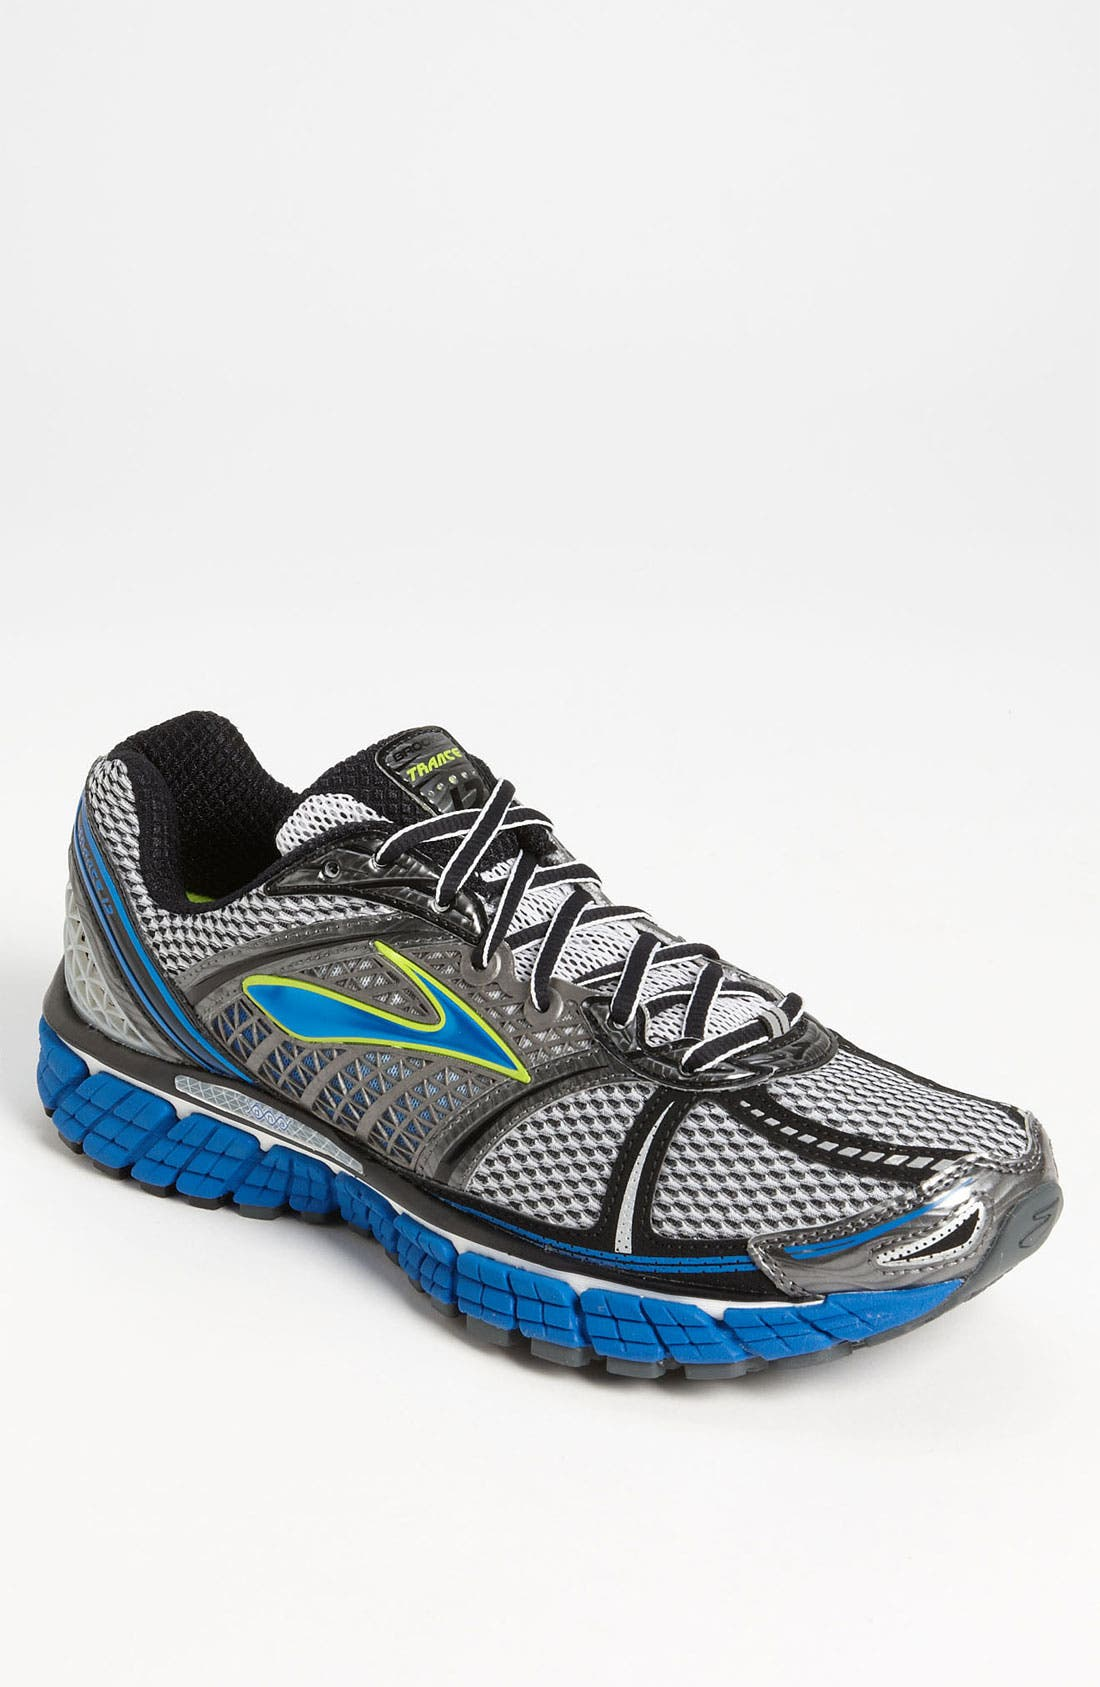 Main Image - Brooks 'Trance 12' Running Shoe (Men)